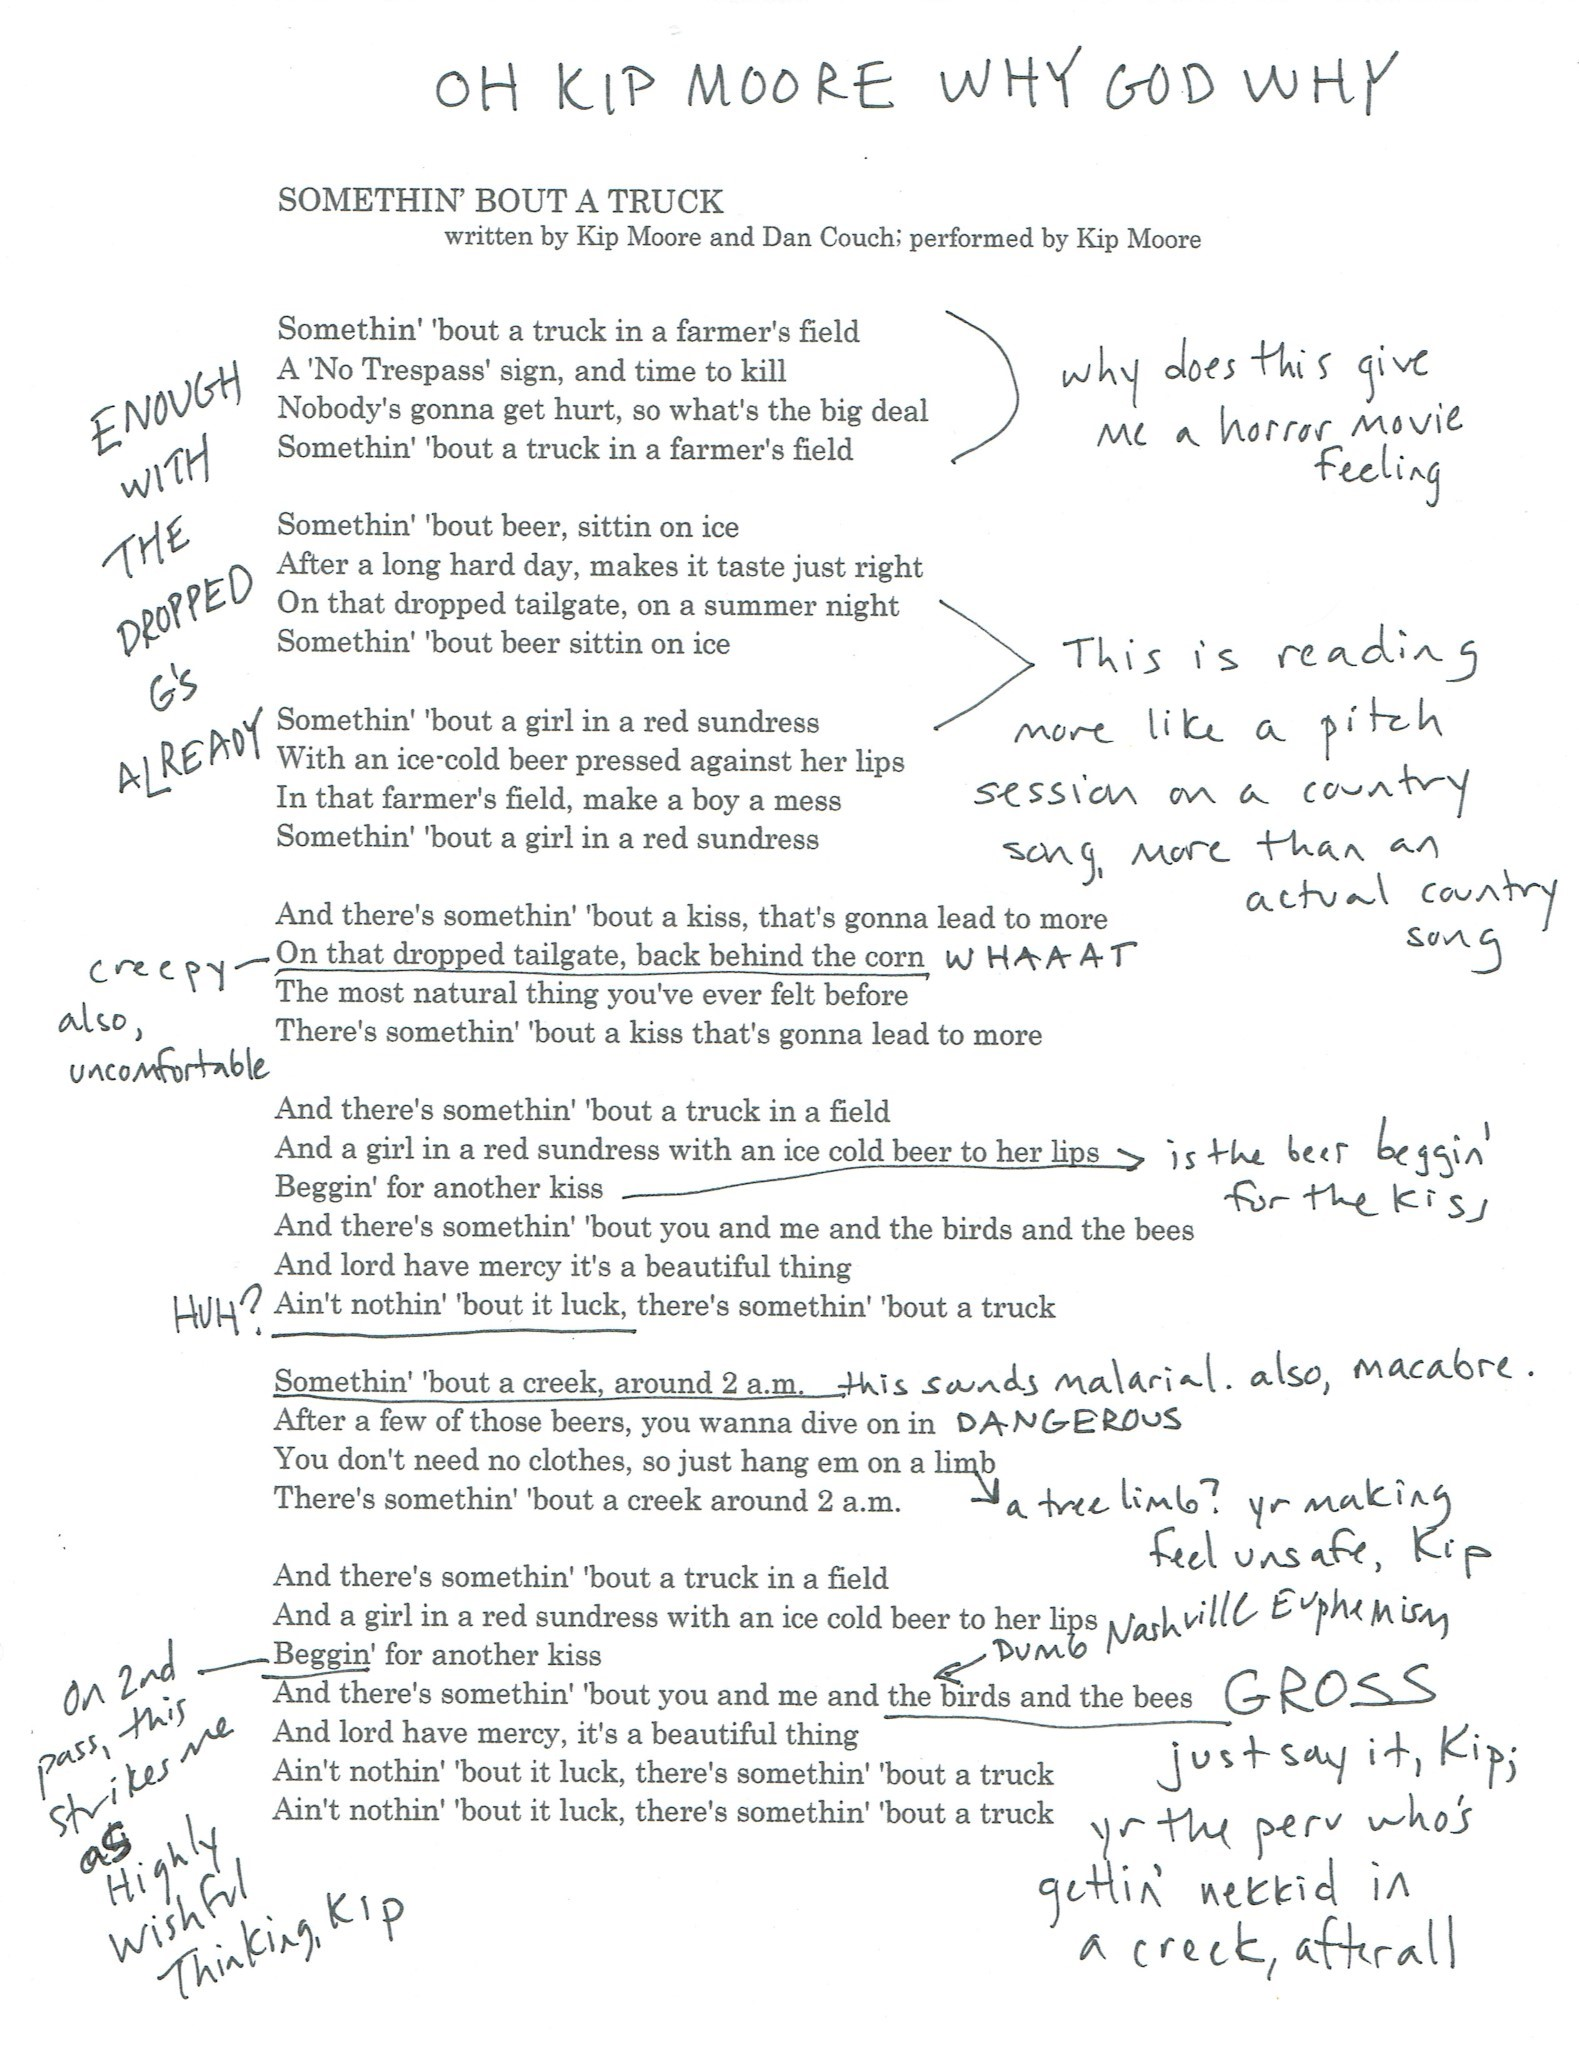 Anatomy of a Country Music Song, Part VI